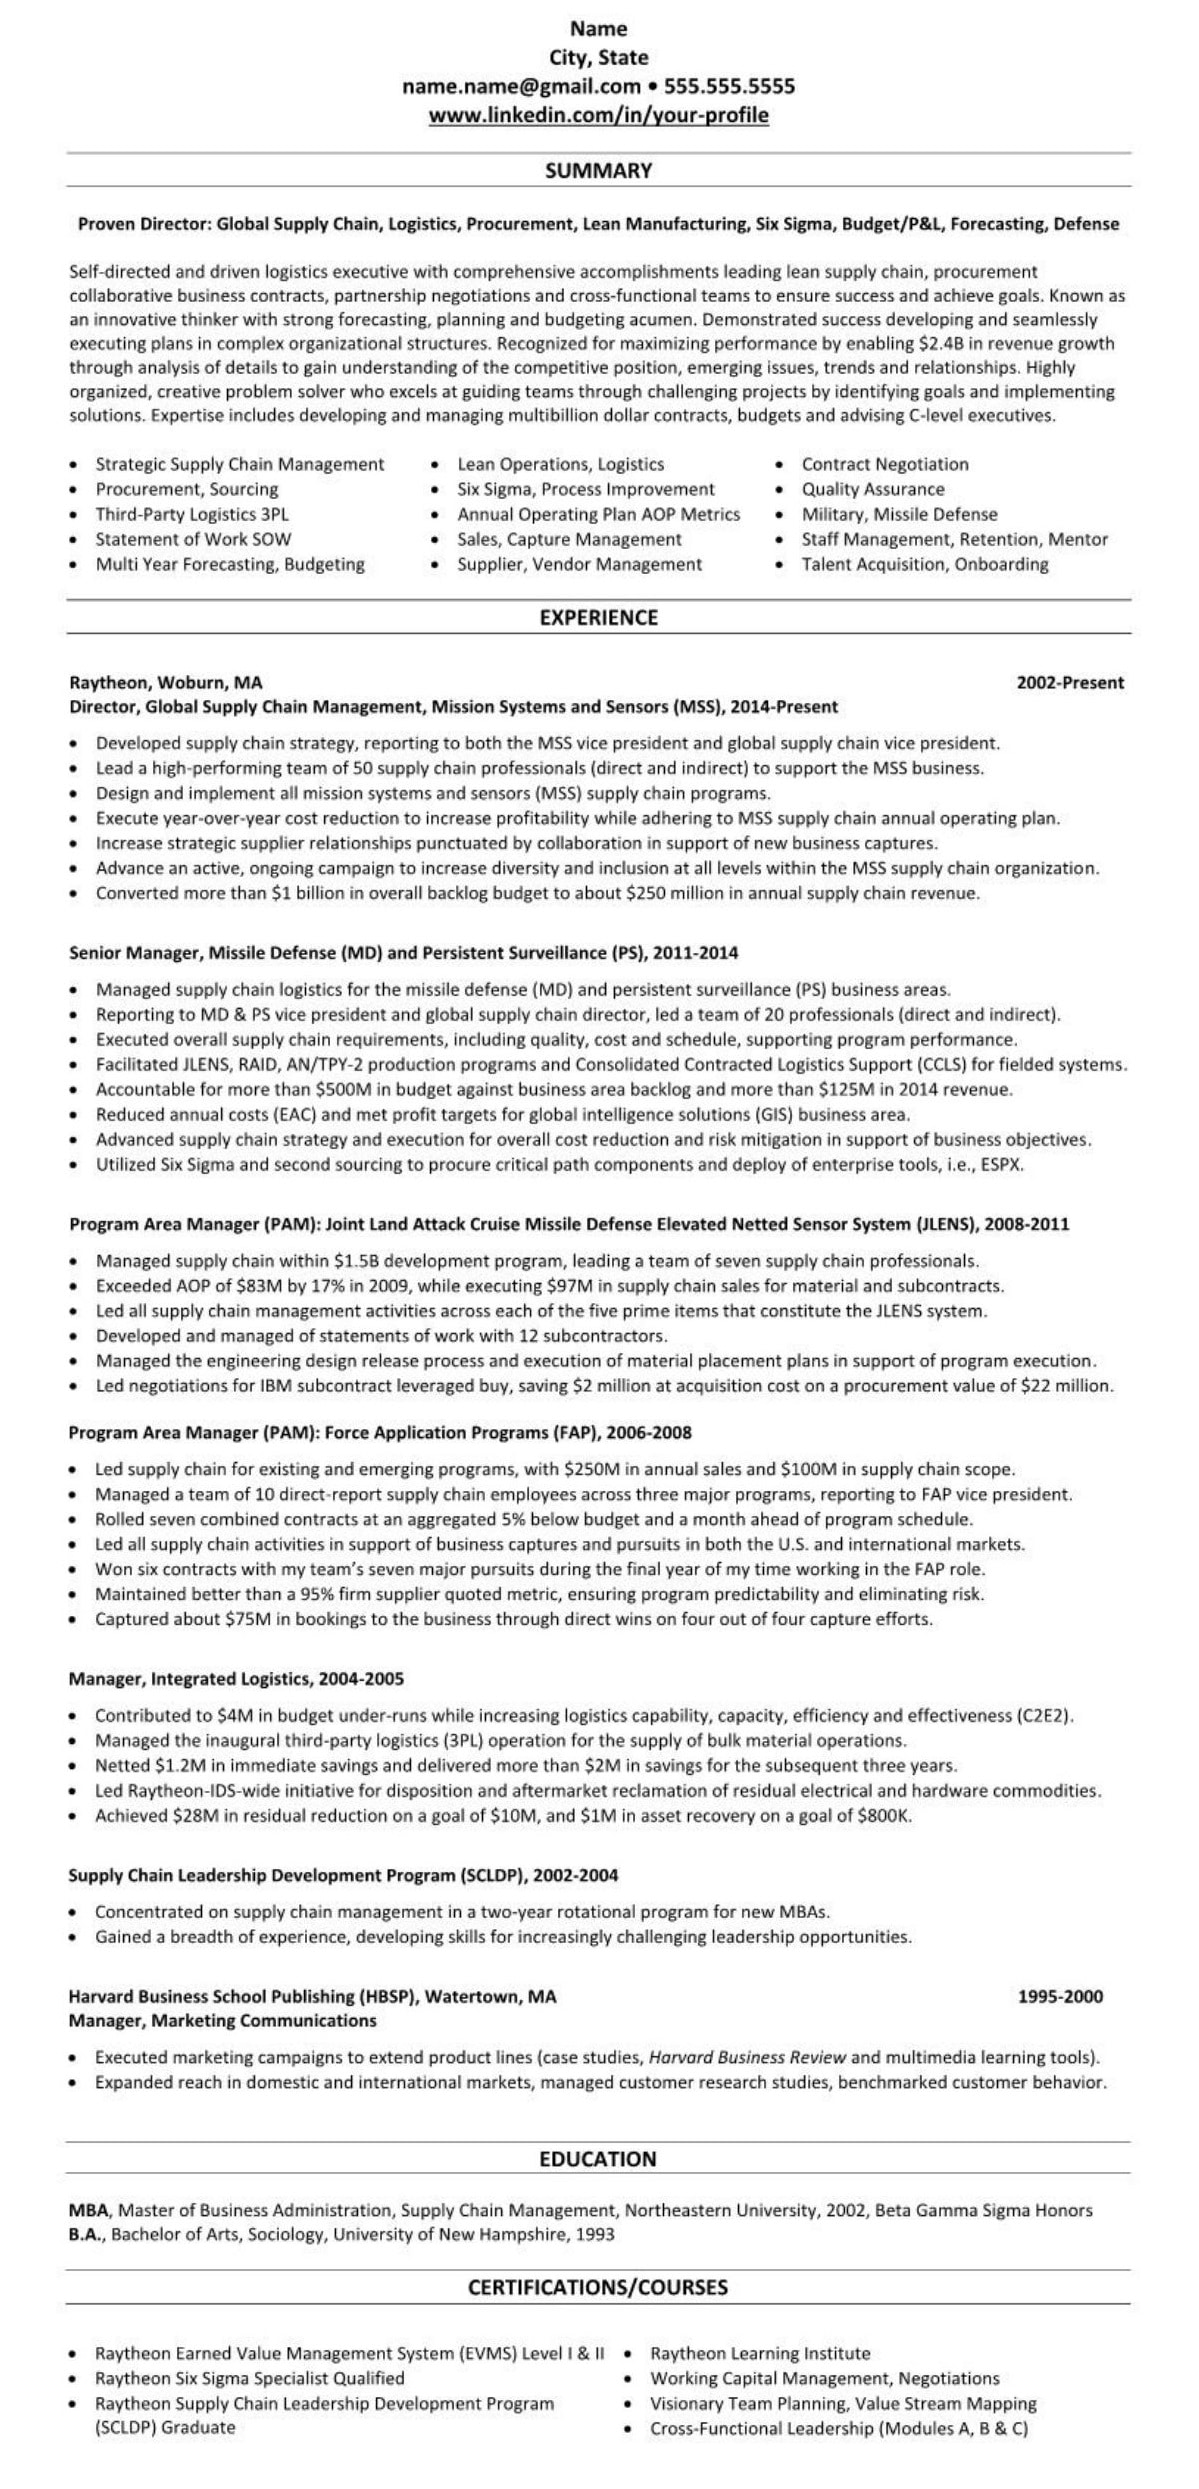 professional executive resume example procurement supply chain logistics 2161